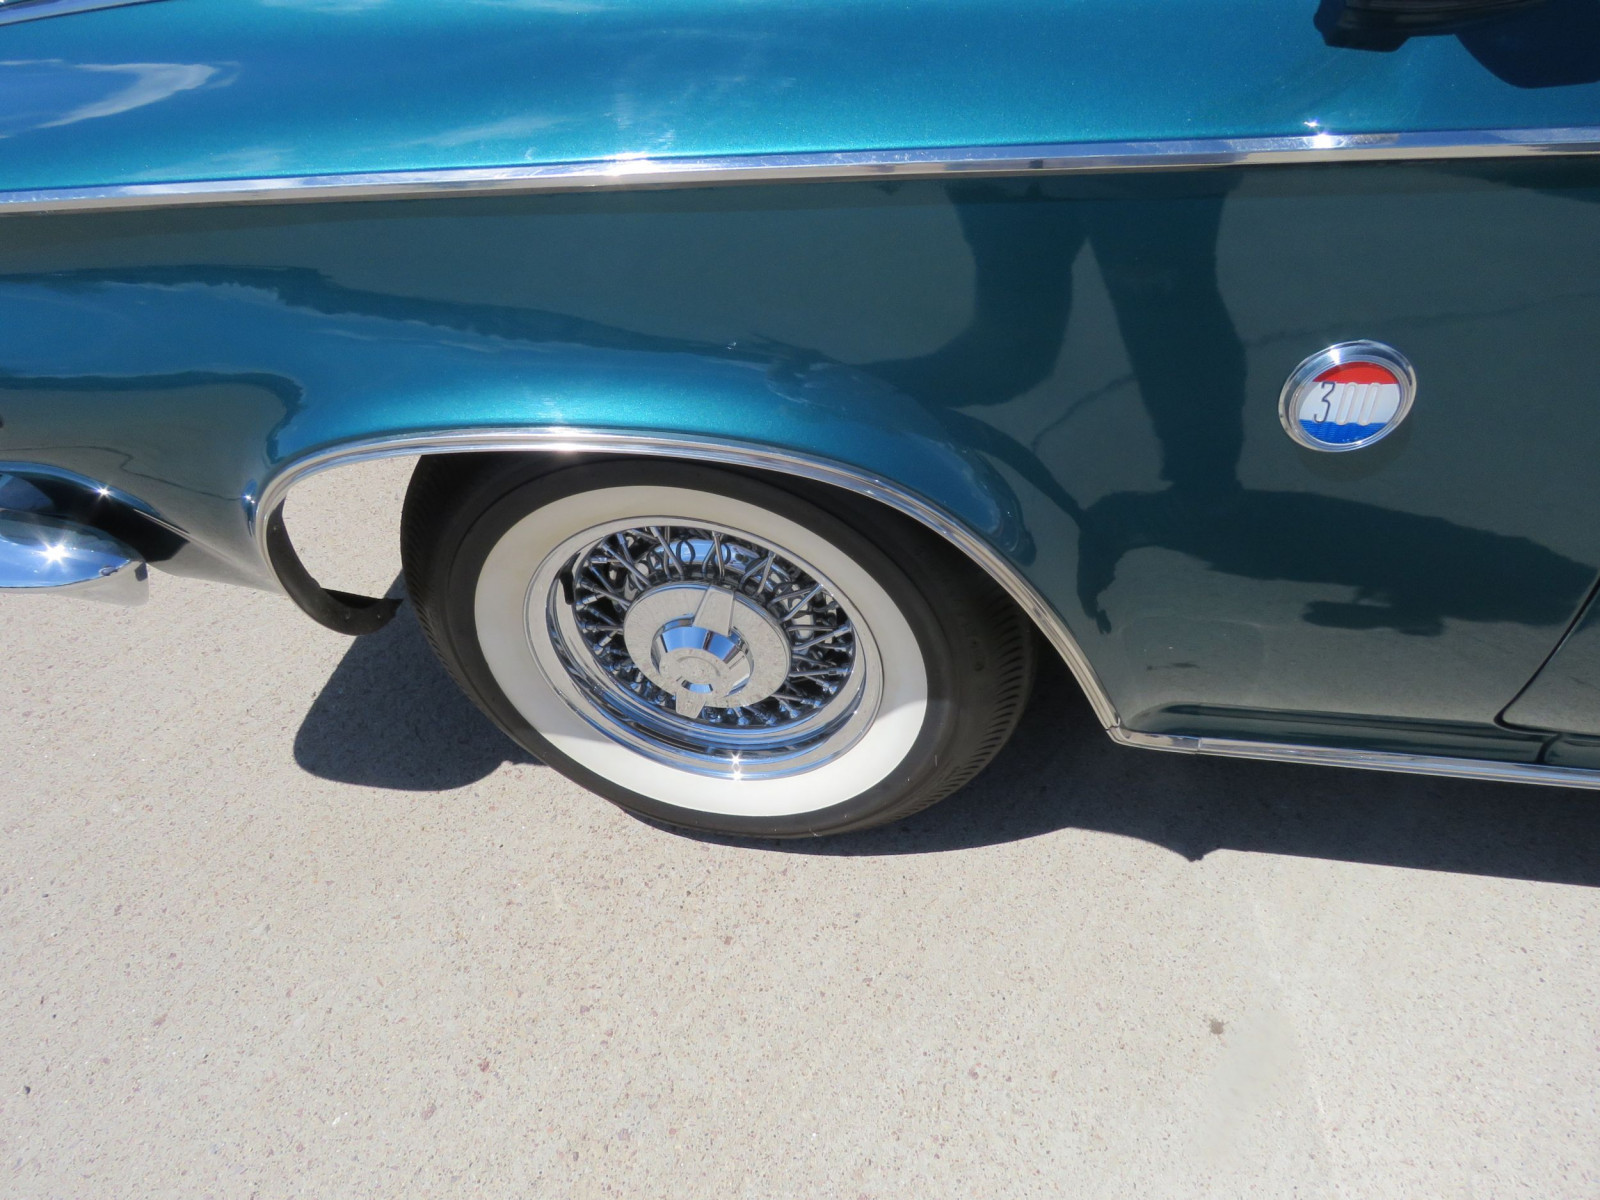 RARE 1963 Chrysler 300 Pace Setter Convertible Indy 500 Pace car - Image 12